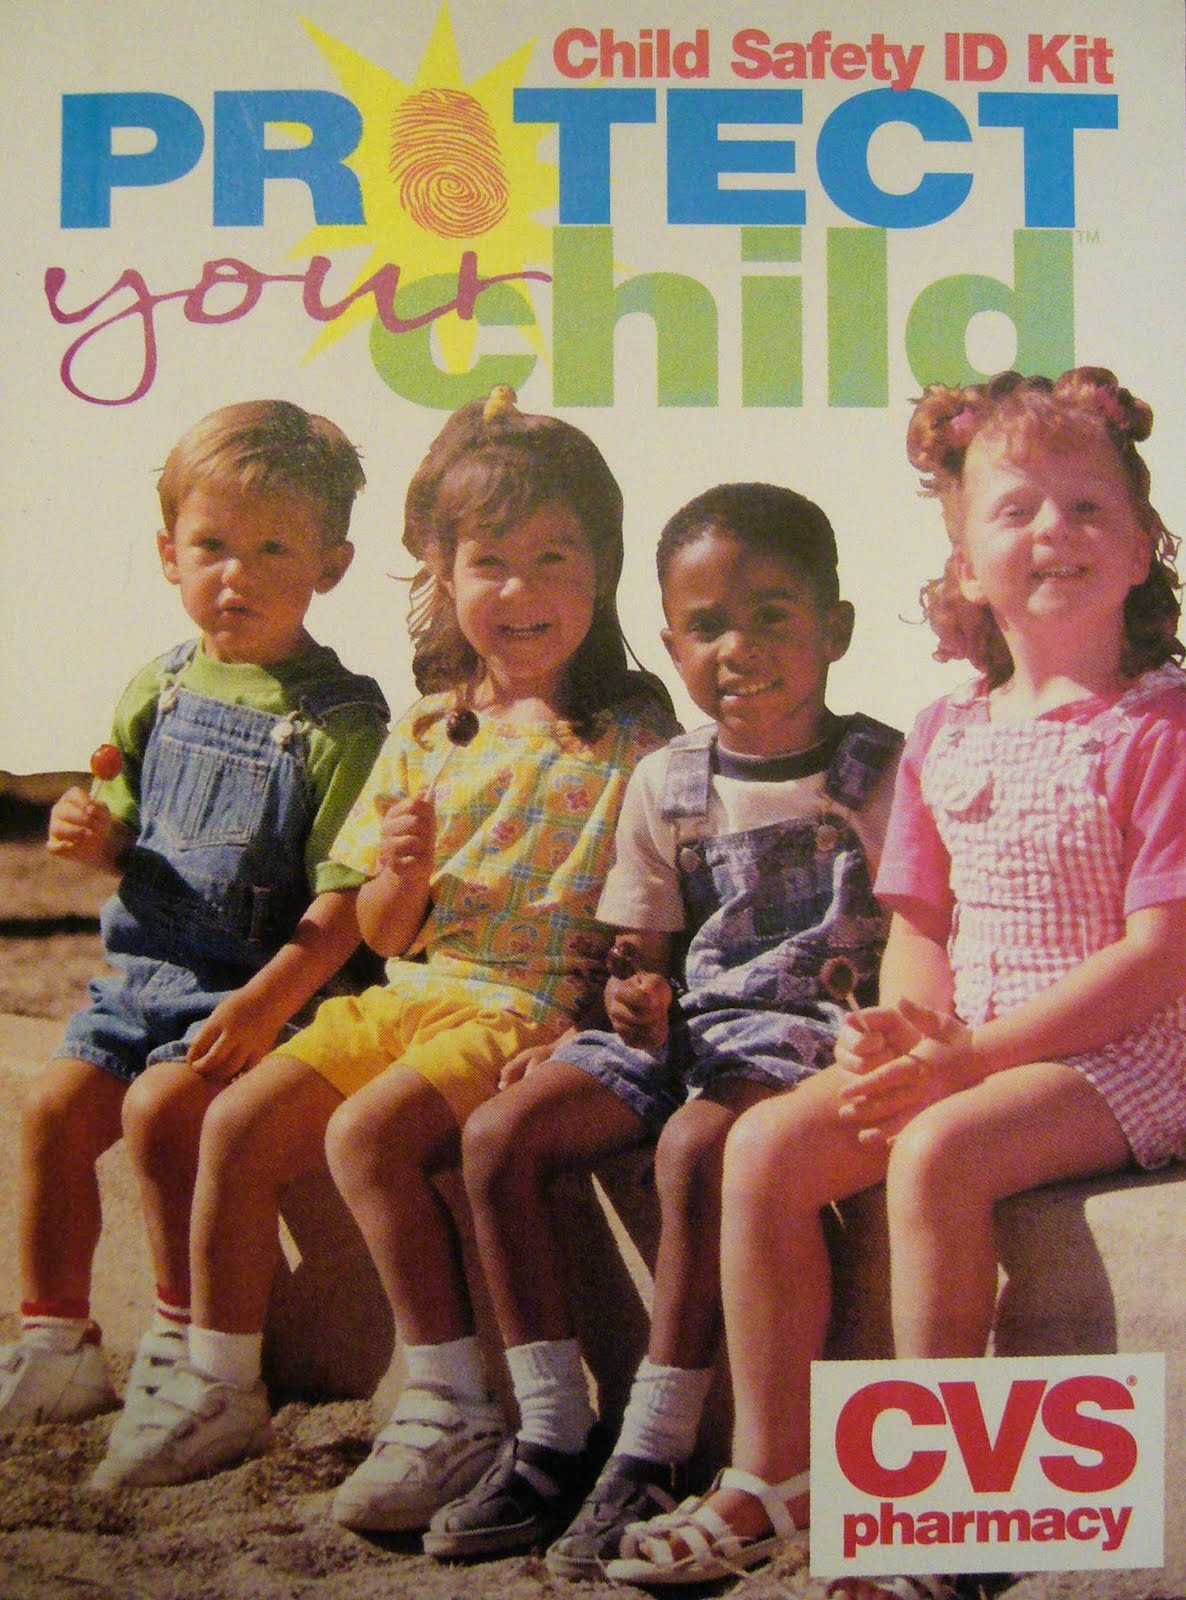 Simply CVS: CVS Child Safety ID Kit ~ Free Photo Developing Inside: www.simplycvsshopping.com/2010/07/cvs-child-safety-id-kit-free...